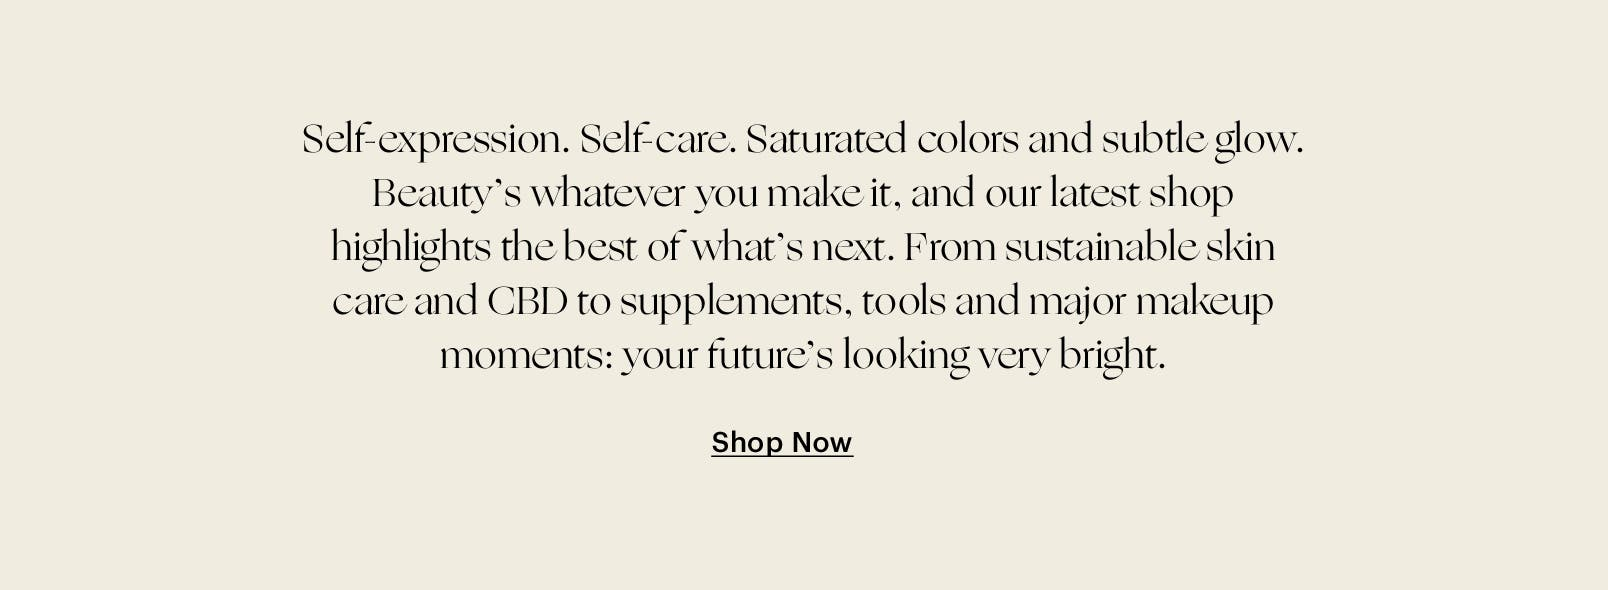 Self-expression. Self-care. Saturated colors and subtle glow. Beauty's whatever you make it, and our latest shop highlights the best of what's next. From sustainable skin care and CBD to supplements, tools and major makeup moments: your future's looking very bright.